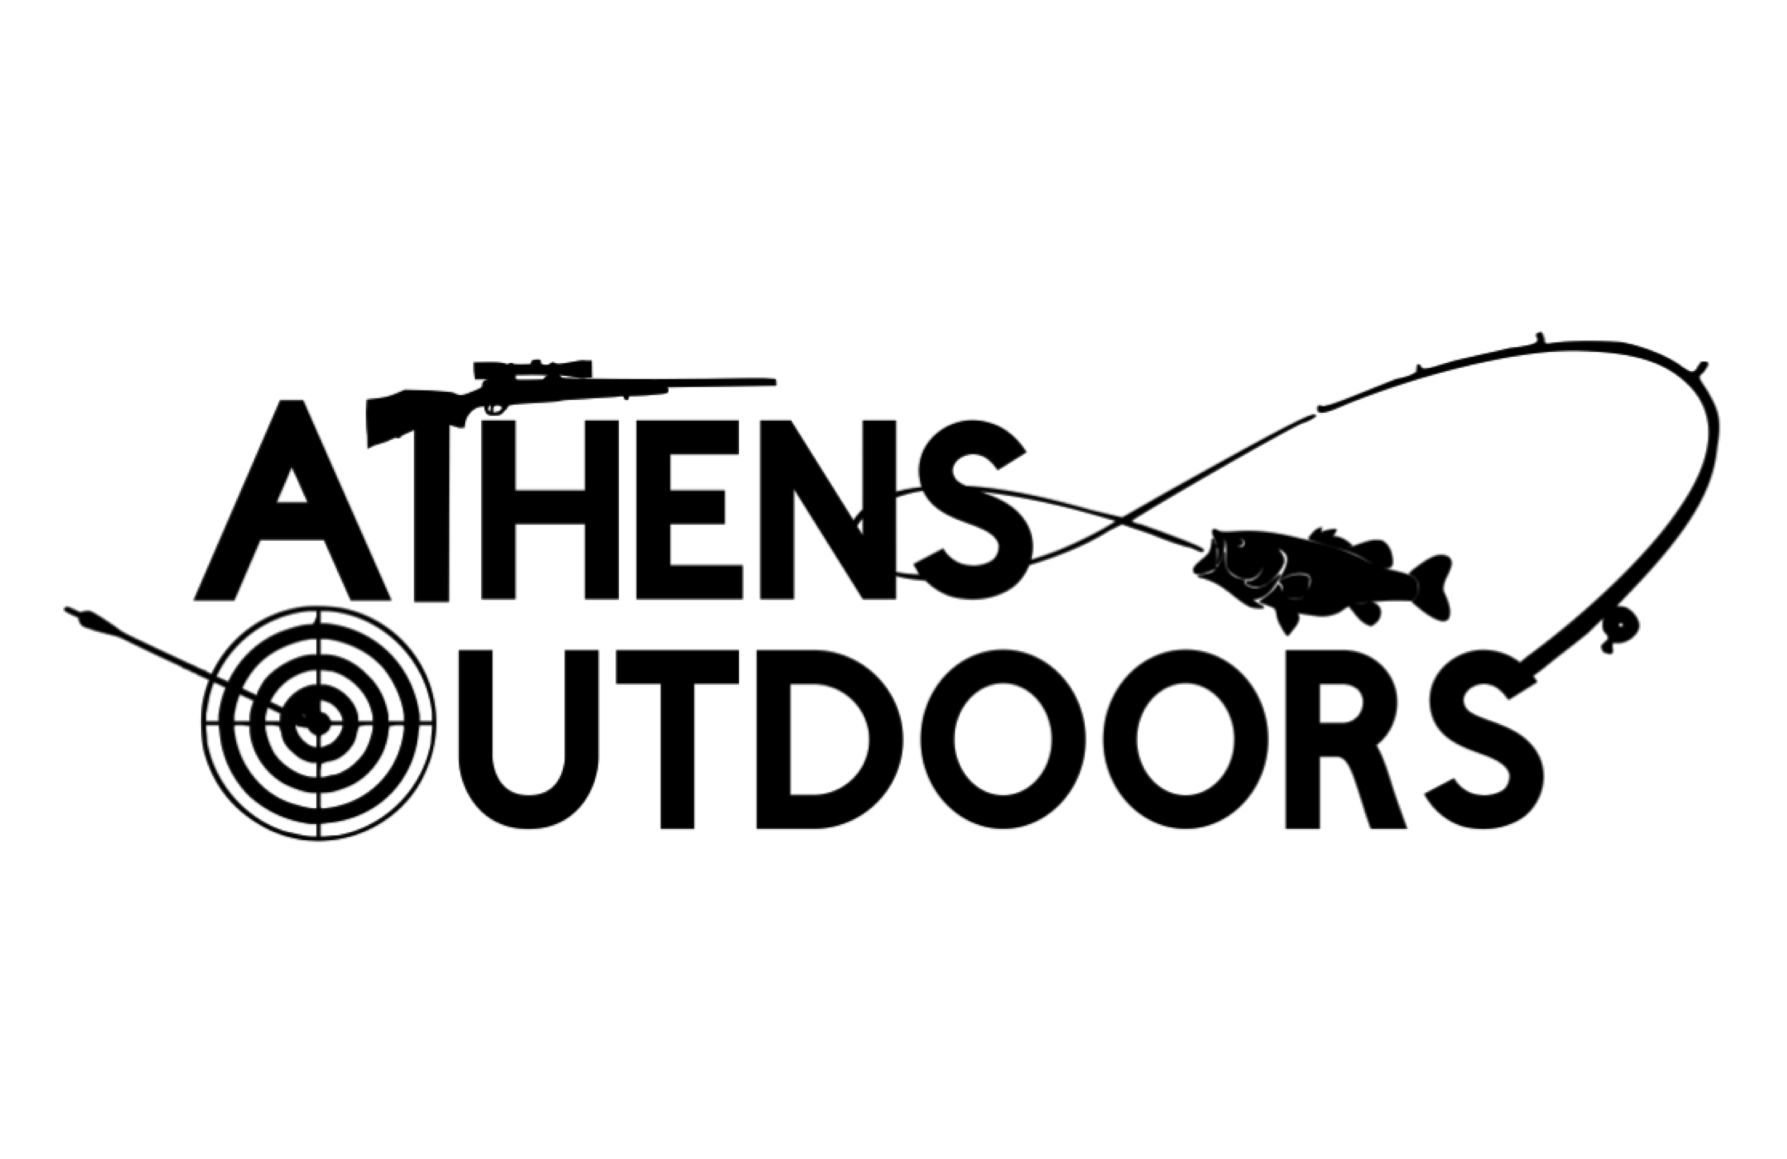 Shopping center purchased, Athens Outdoors store to be